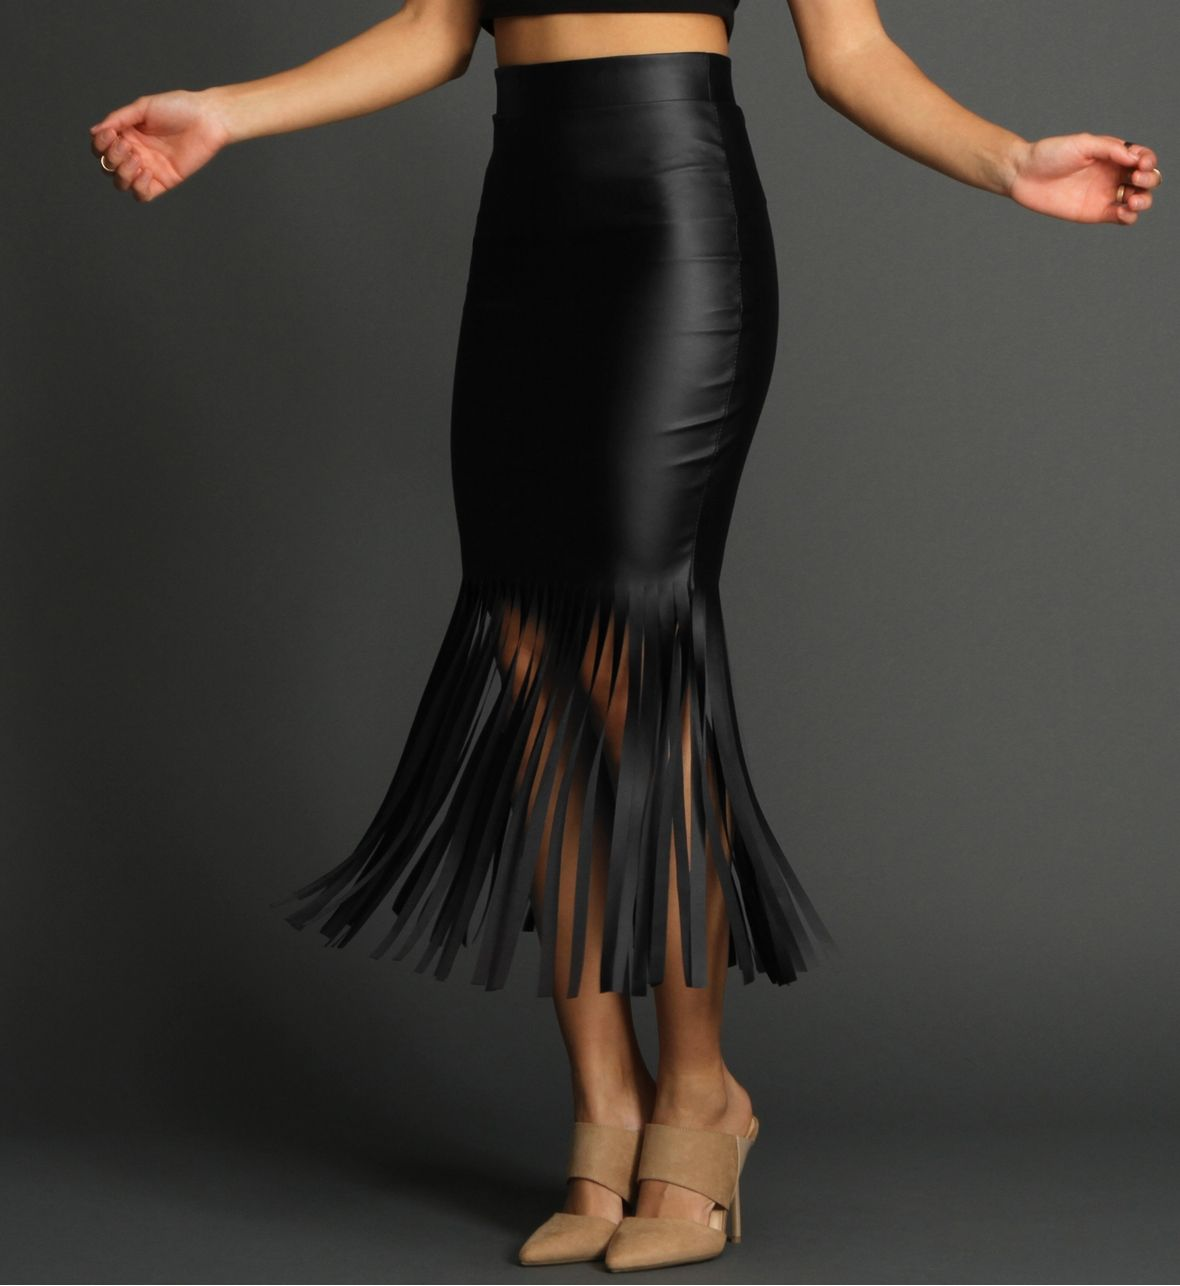 Black Faux Leather Mermaid Fringe Skirt | wish lists | Pinterest ...